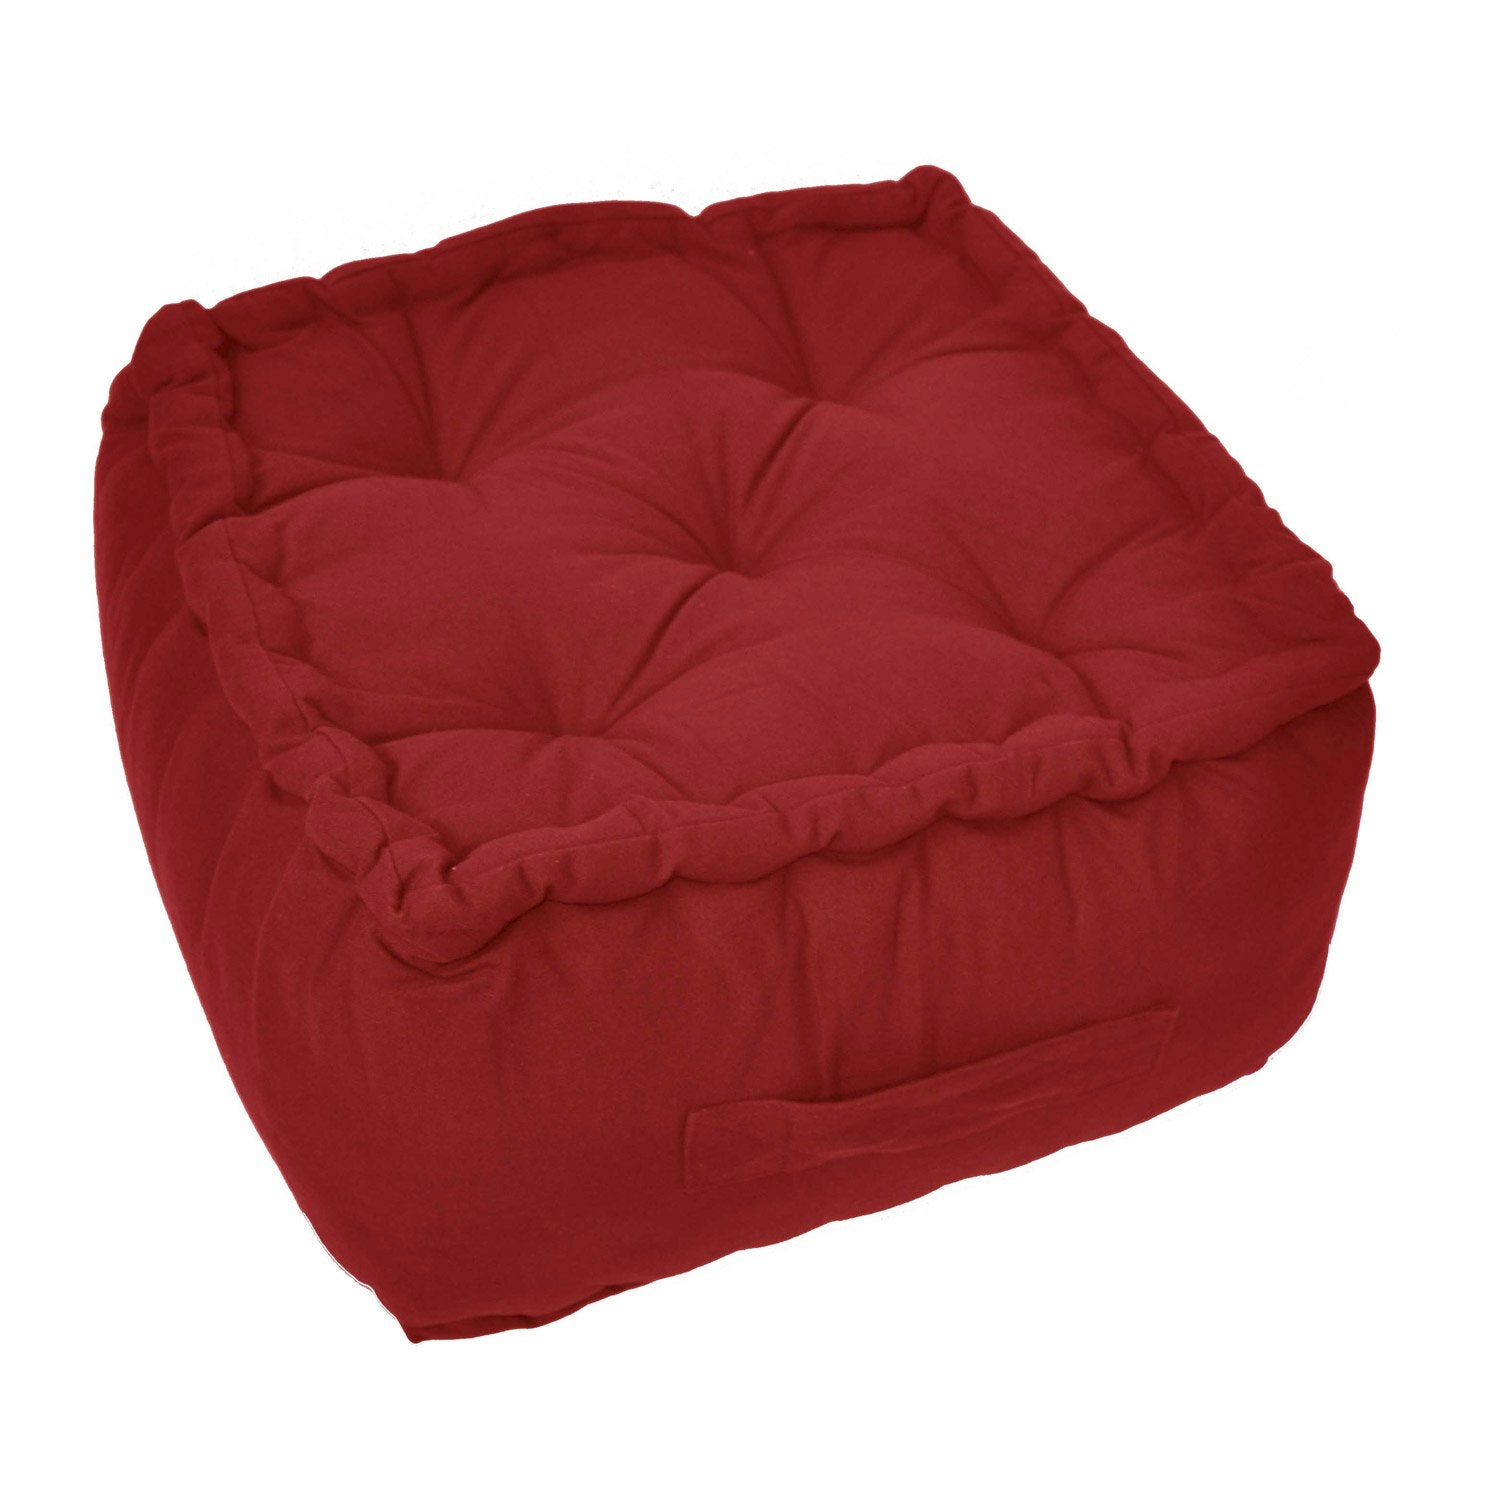 pouf bachette rouge rouge n 3 40 x 40 cm leroy merlin. Black Bedroom Furniture Sets. Home Design Ideas